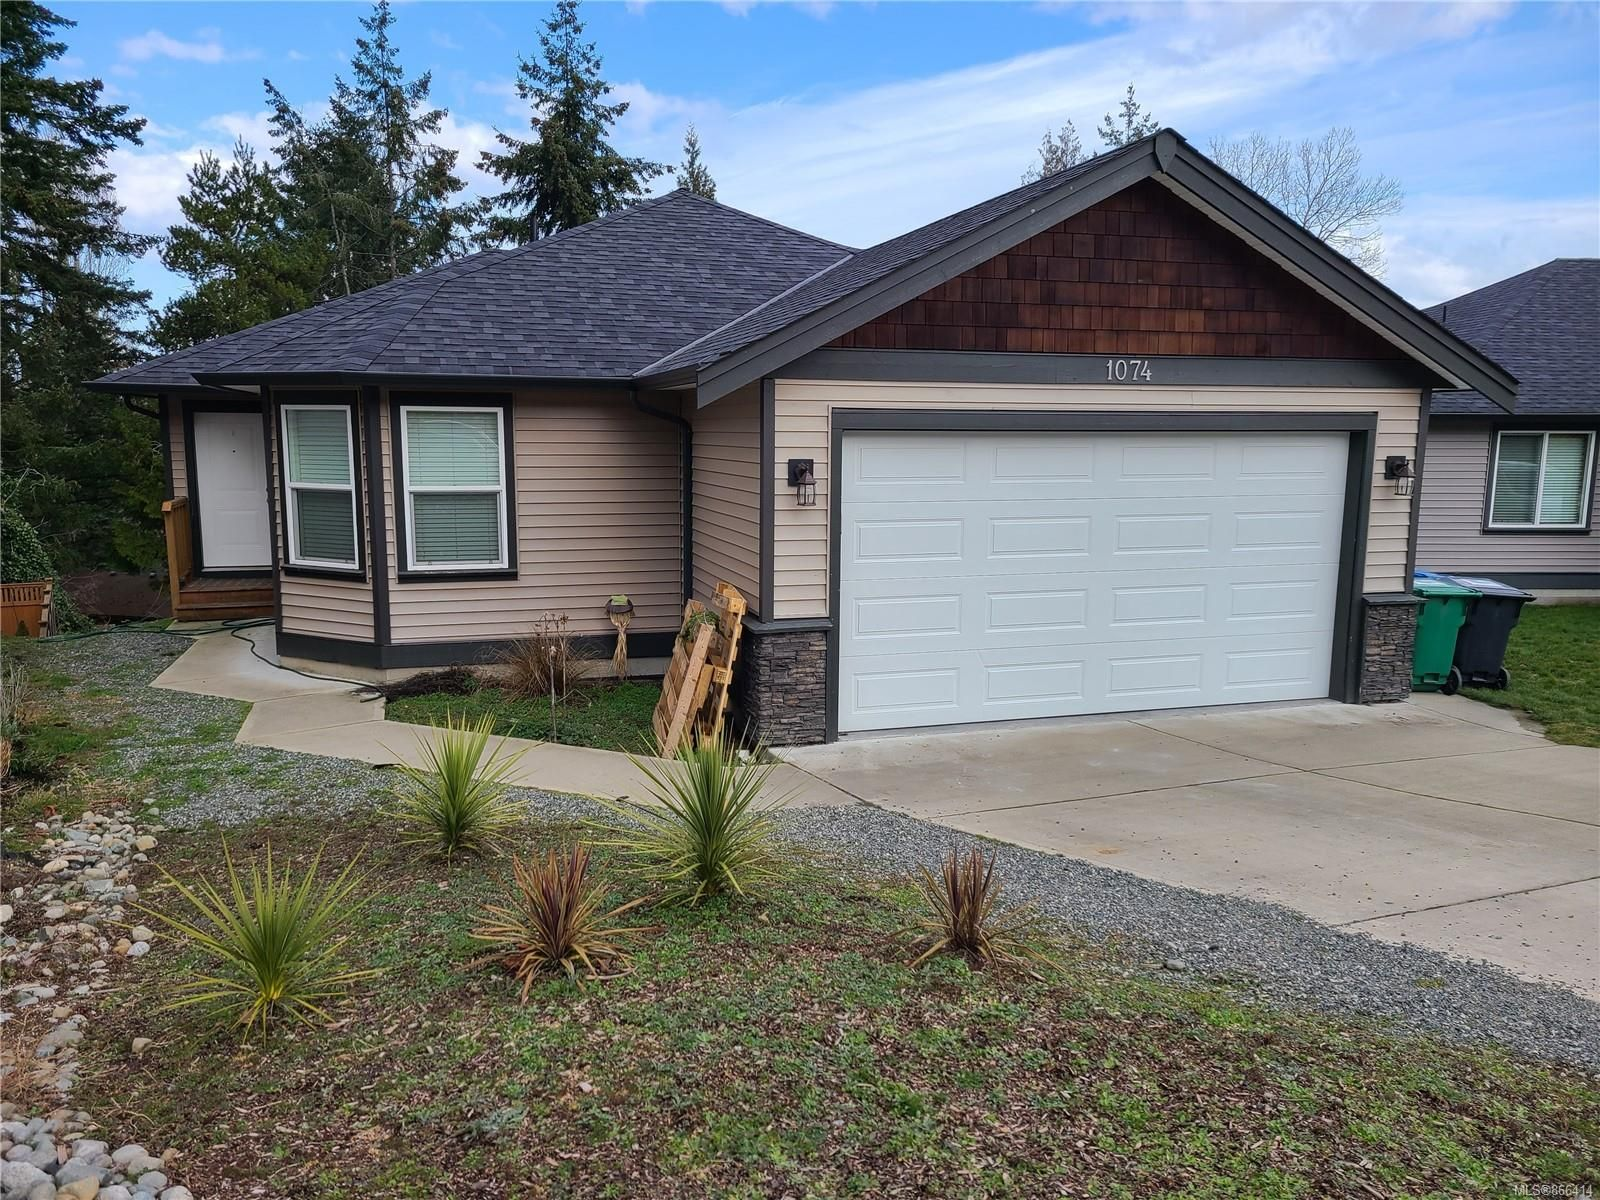 Main Photo: 1074 Shelby Ann Ave in : Na University District House for sale (Nanaimo)  : MLS®# 866414